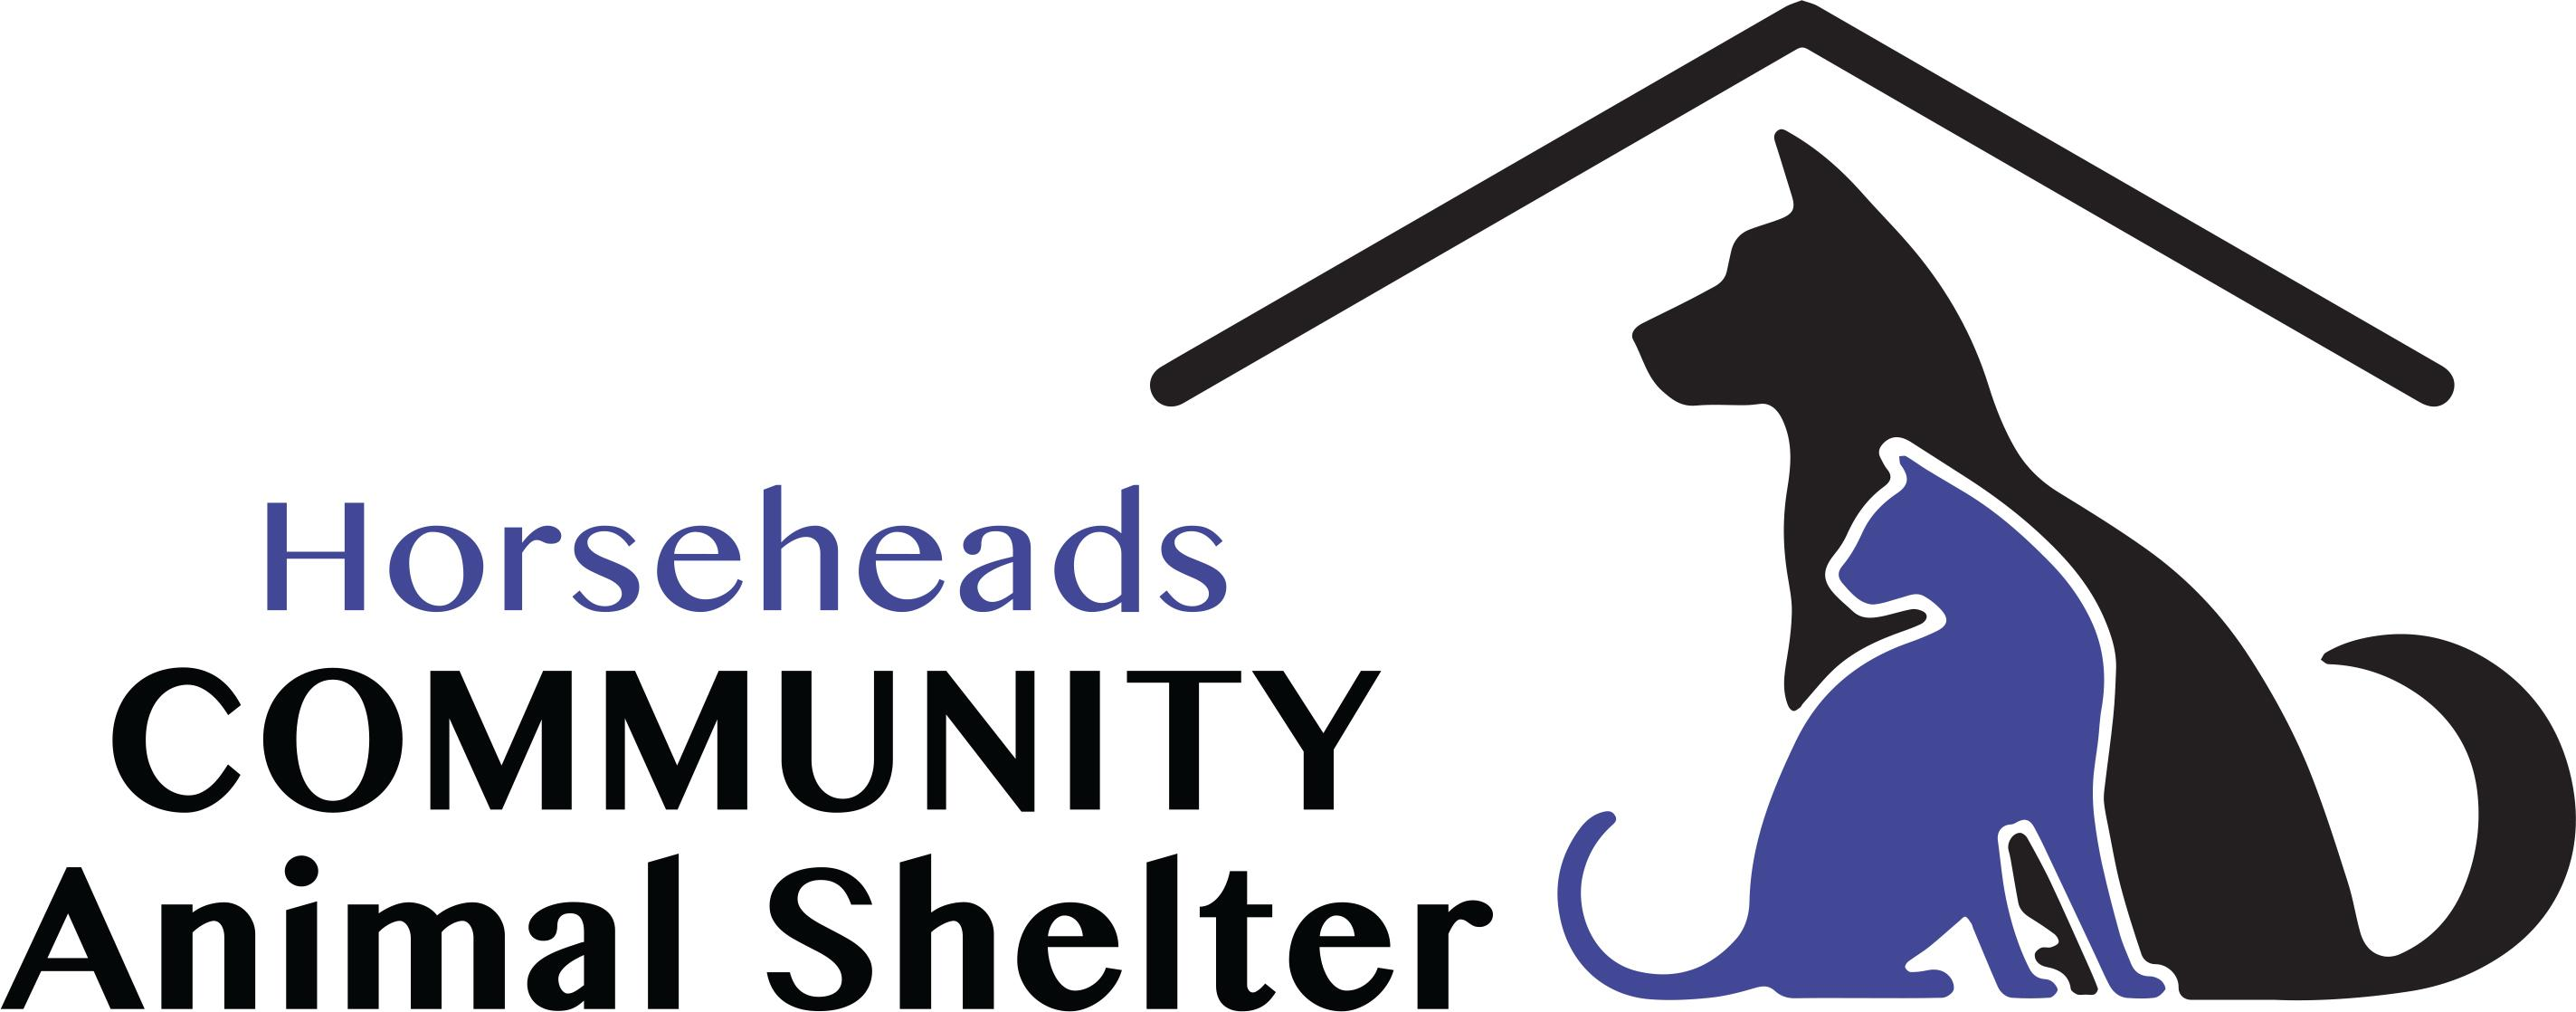 Horseheads Community Animal Shelter